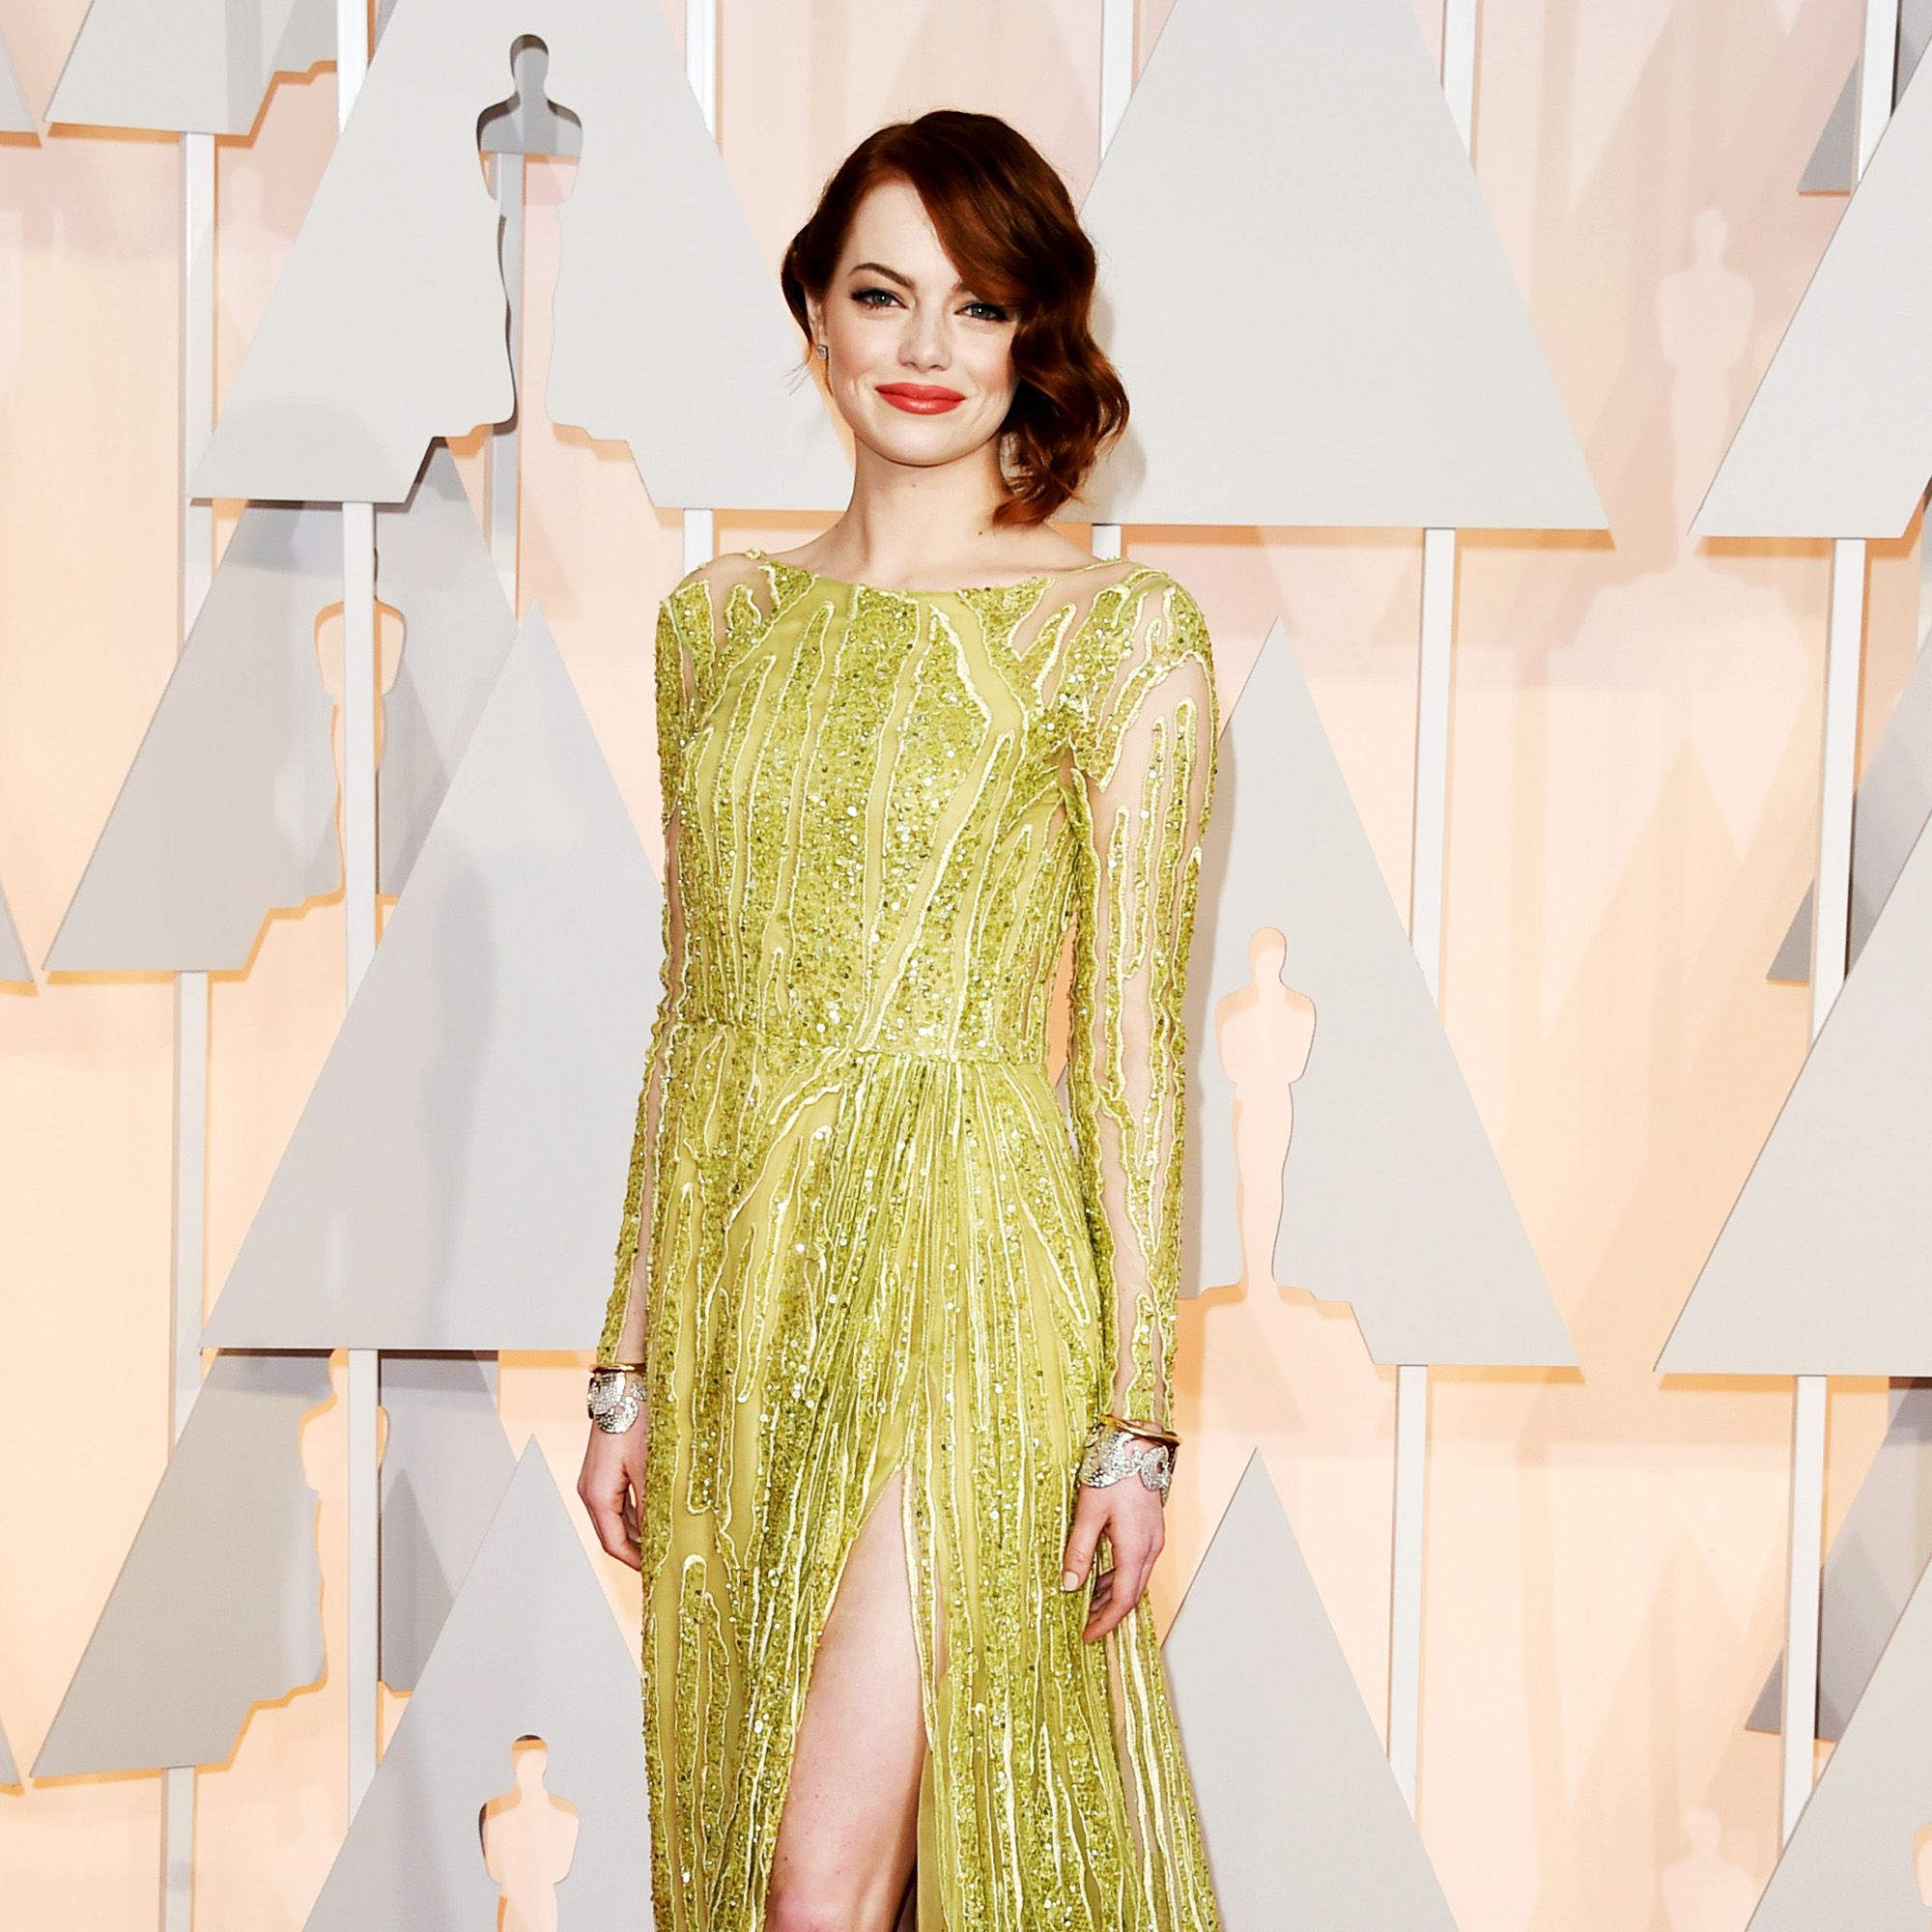 HOLLYWOOD, CA - FEBRUARY 22:  Emma Stone attends the 87th Annual Academy Awards at Hollywood &amp&#x3B; Highland Center on February 22, 2015 in Hollywood, California.  (Photo by Jason Merritt/Getty Images)